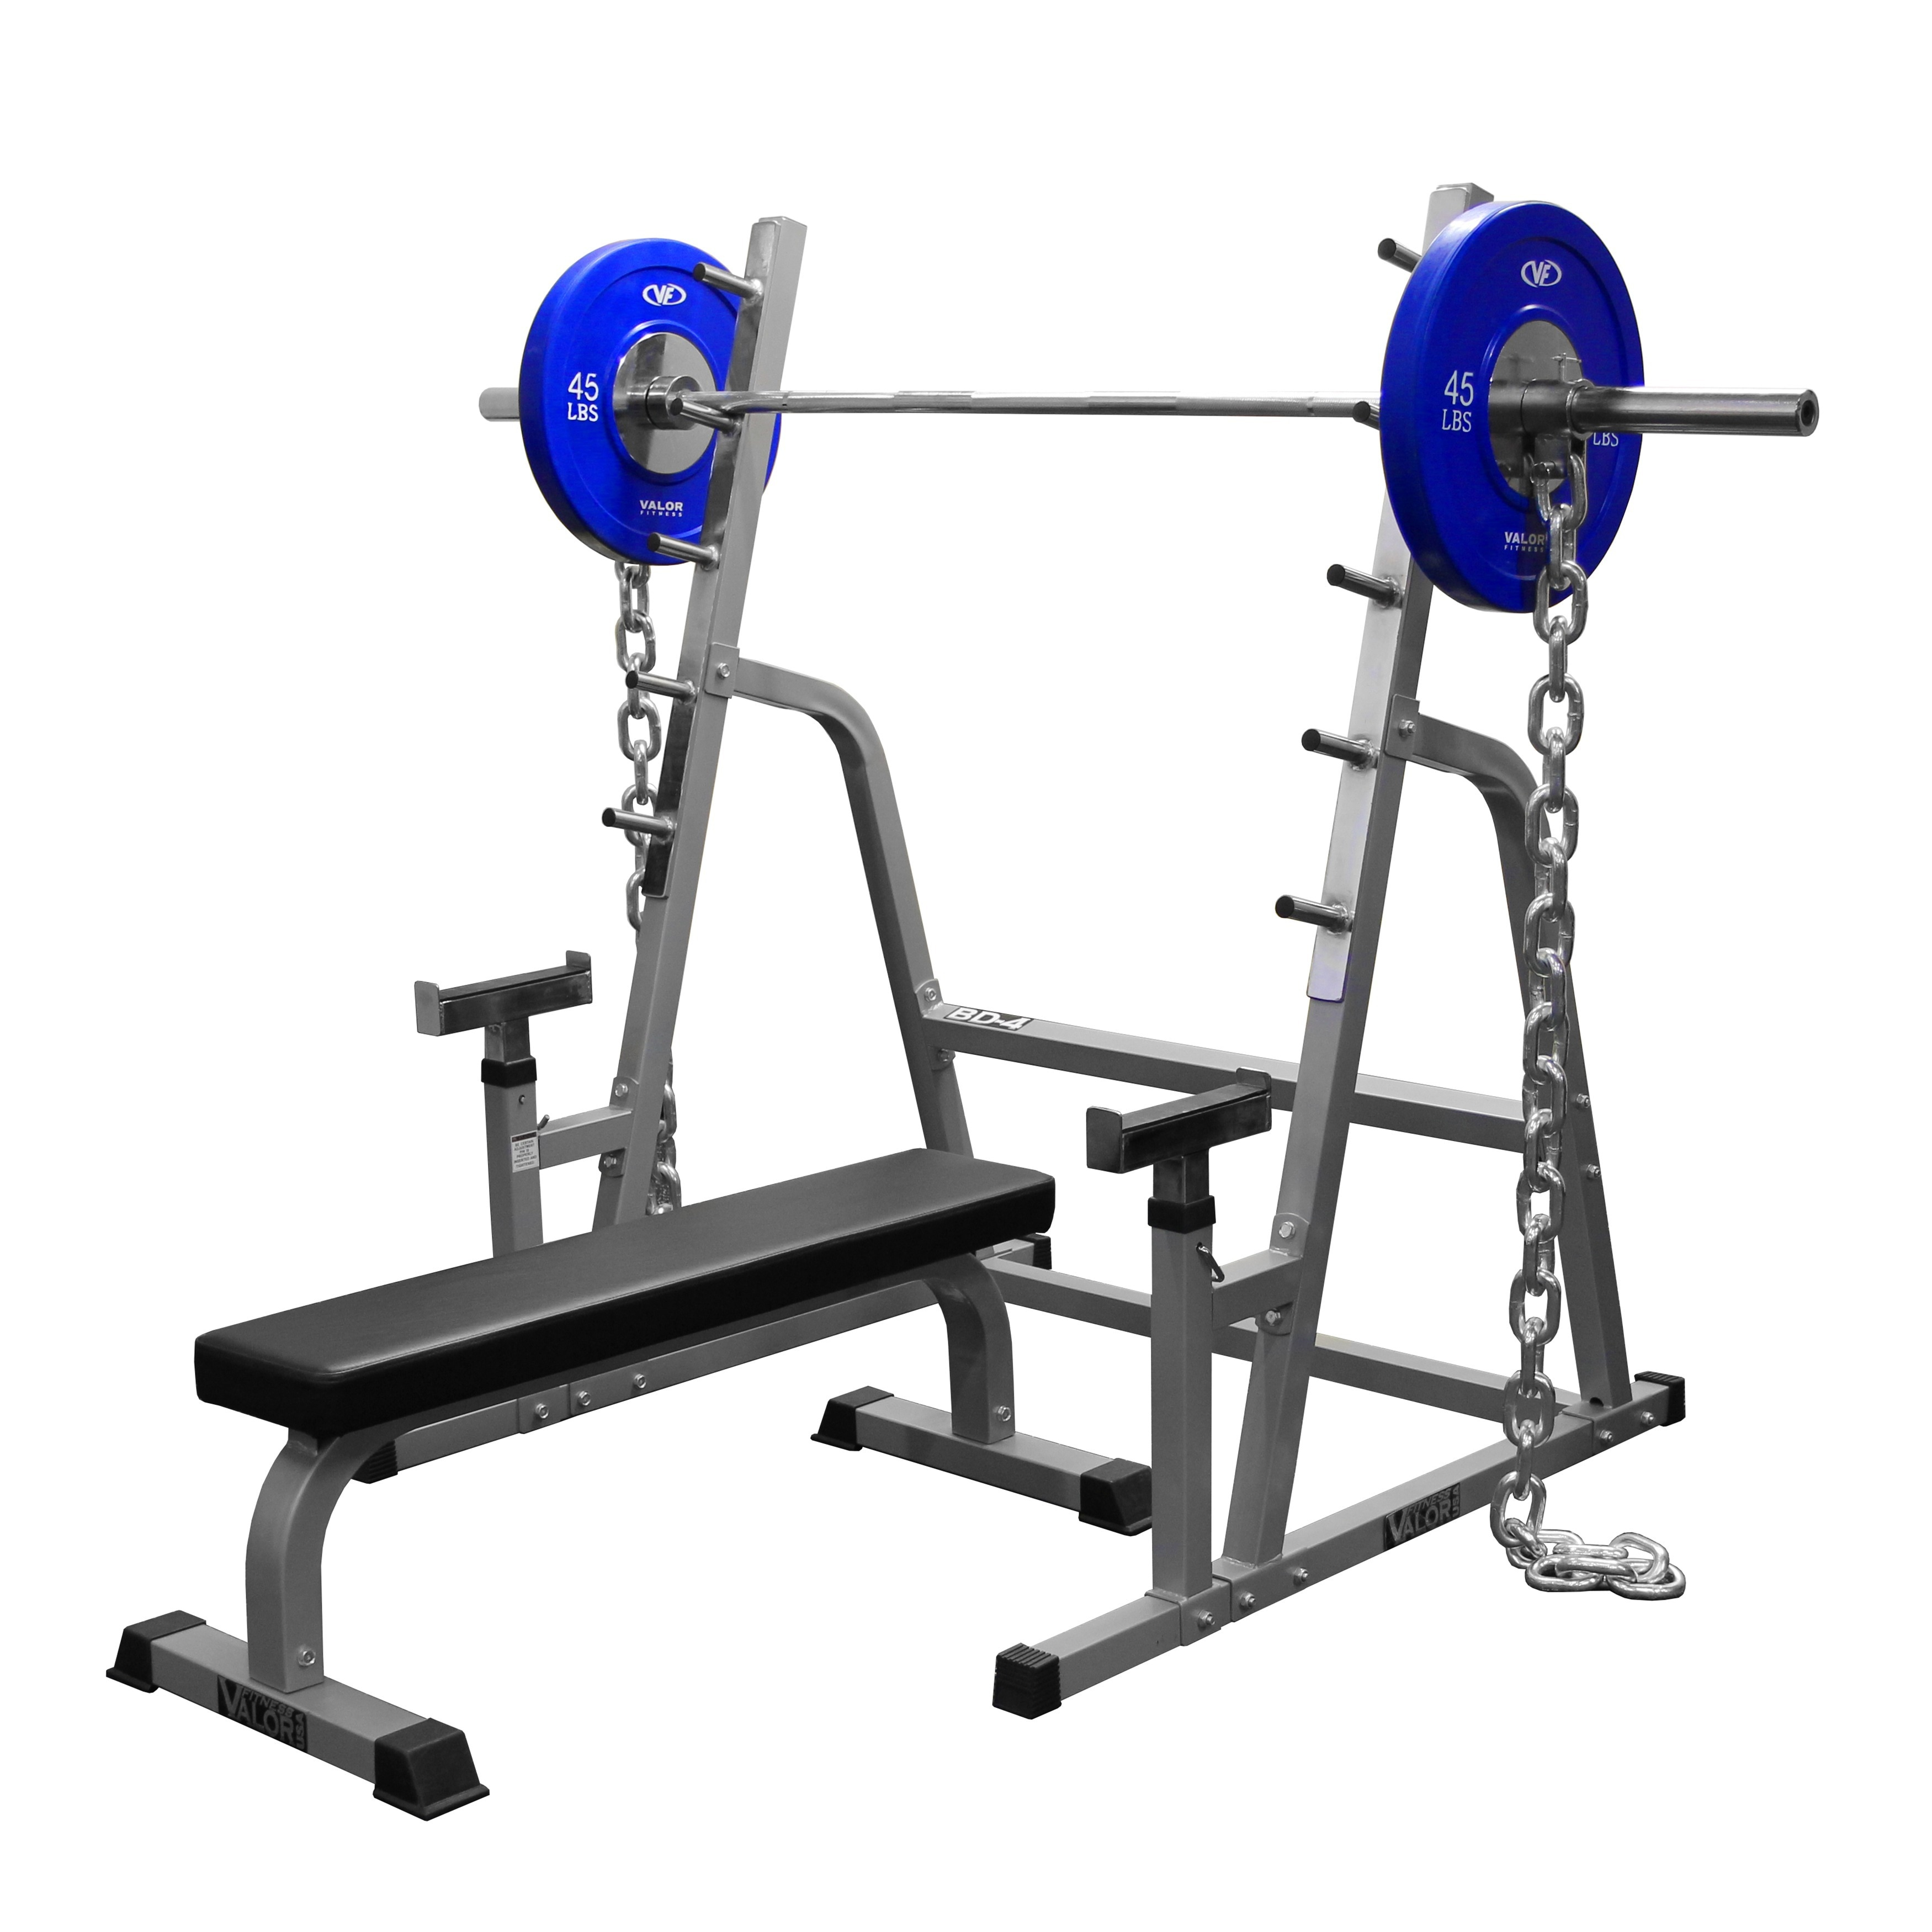 home com press outdoors powerline rack body sports dp bench squat solid amazon gyms